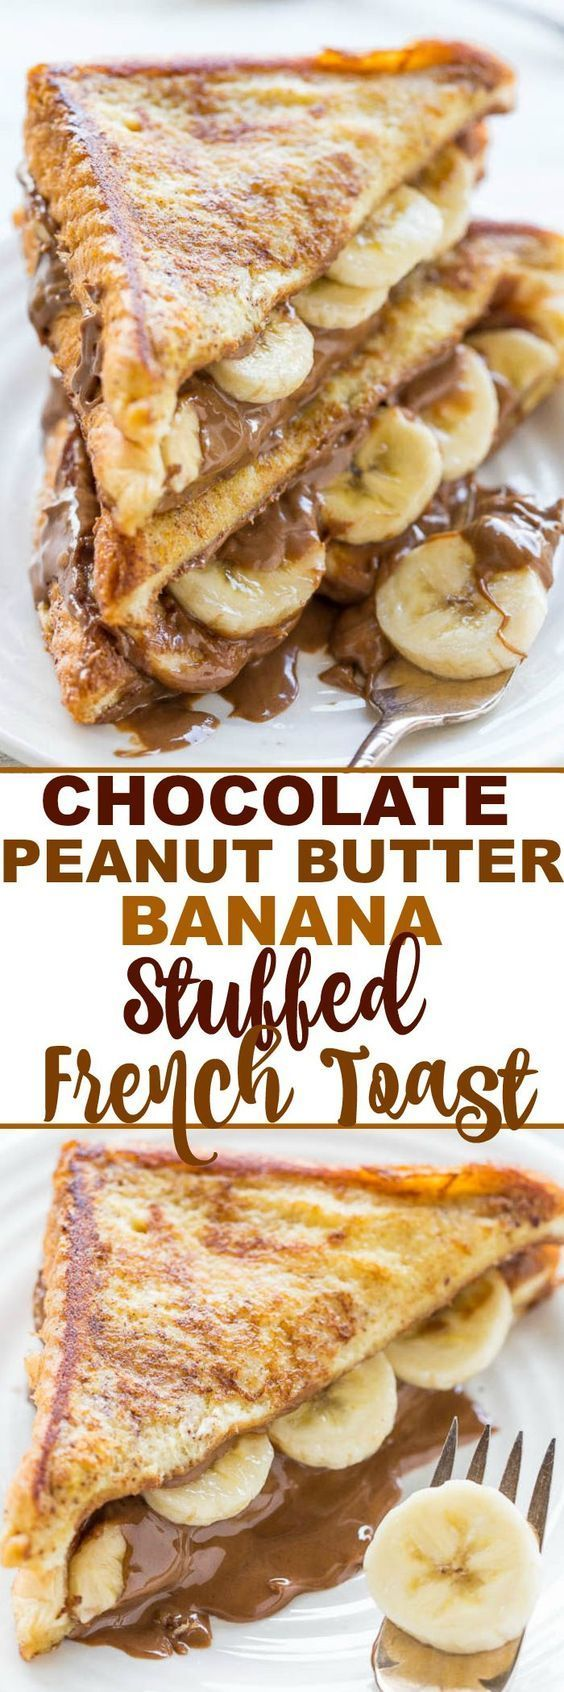 Chocolate Peanut Butter Banana Stuffed French Toast 5 dk hazırlanacak, 2 kadar large sandwiches